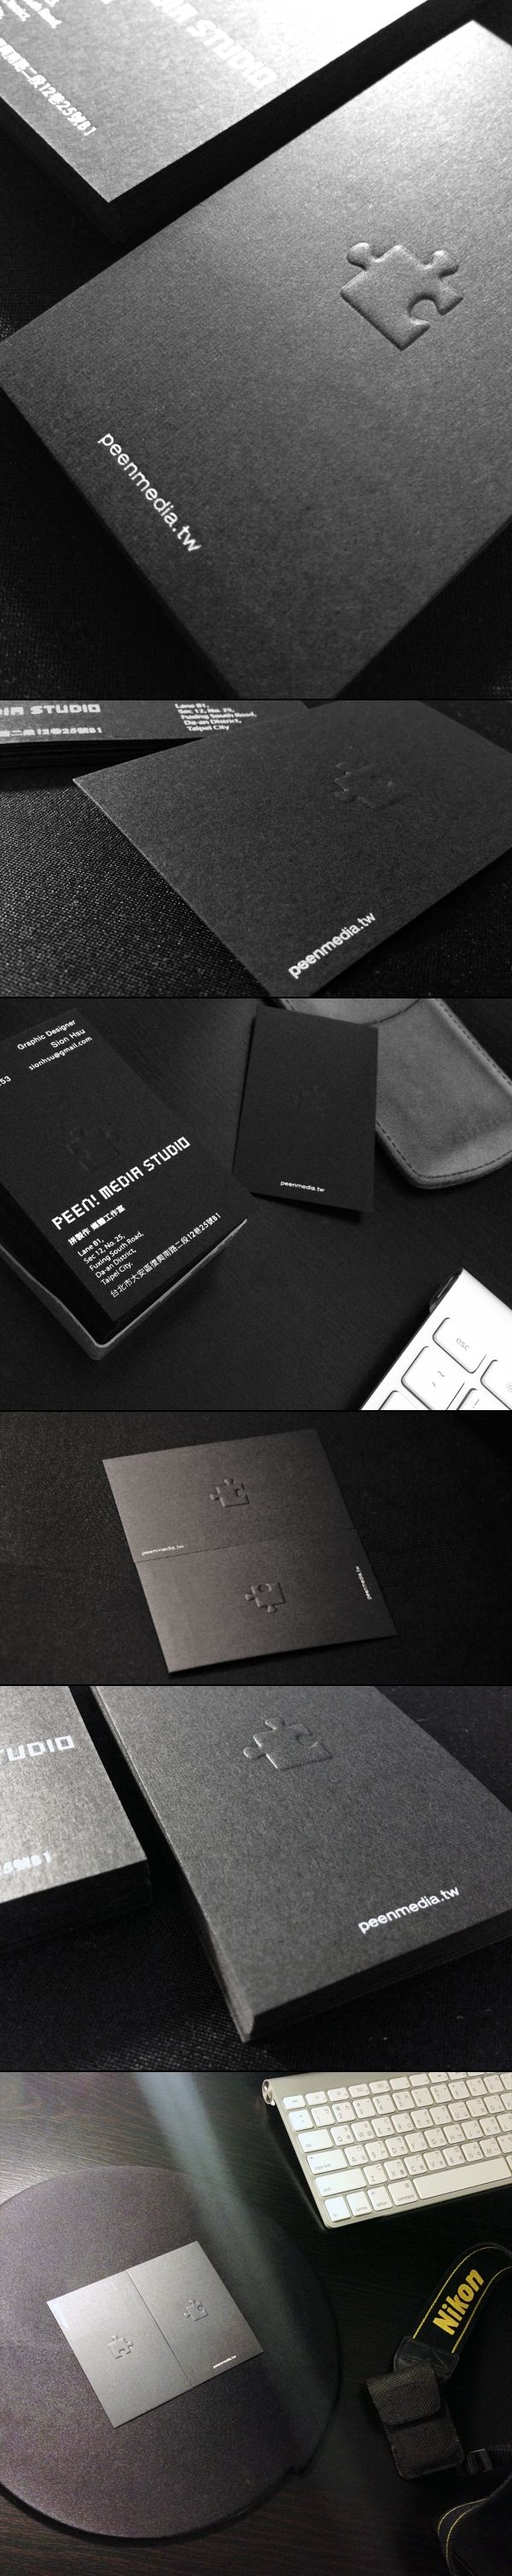 Peen! Media Studio Business Card Design by Sion Hsu